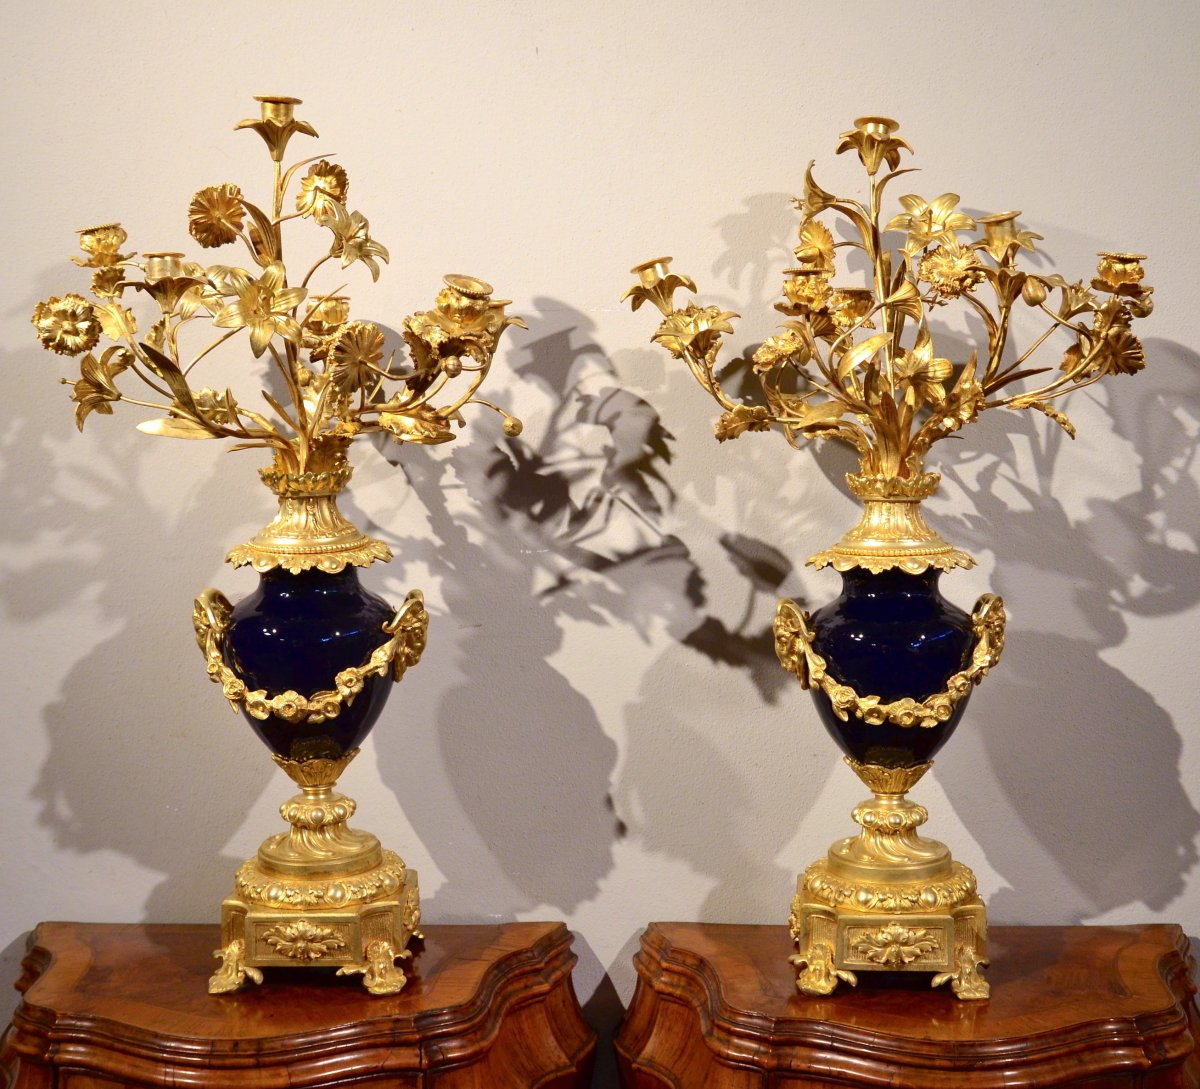 Pair Of Louis XVI Candelabra In Gilt Bronze And Blue Sèvres Porcelain, France 19th Century